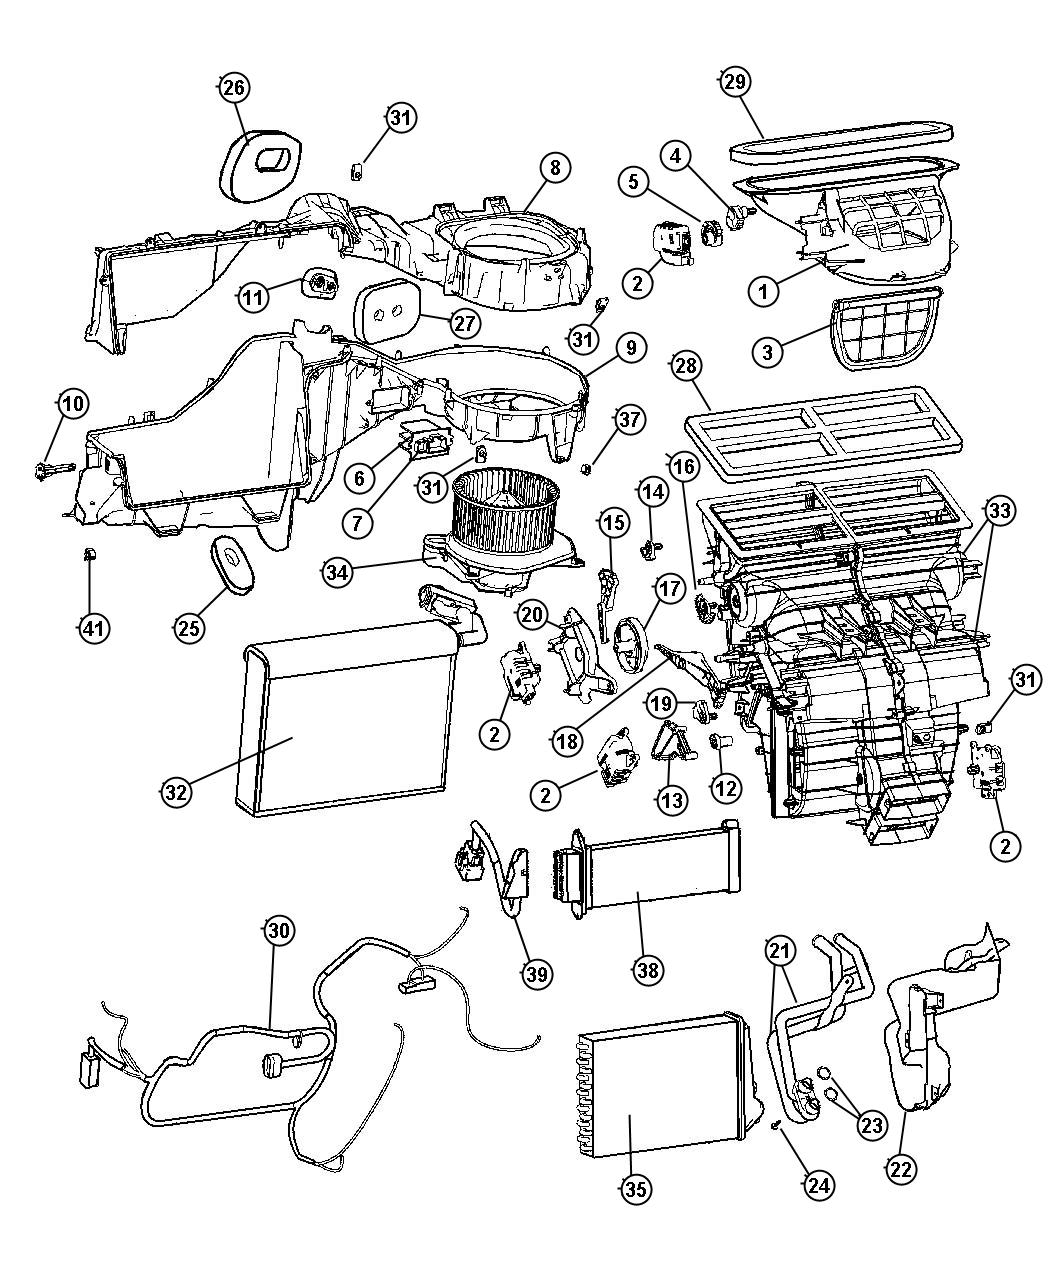 2003 Ford Expedition Parts Diagram Http Www2carproscom Questions